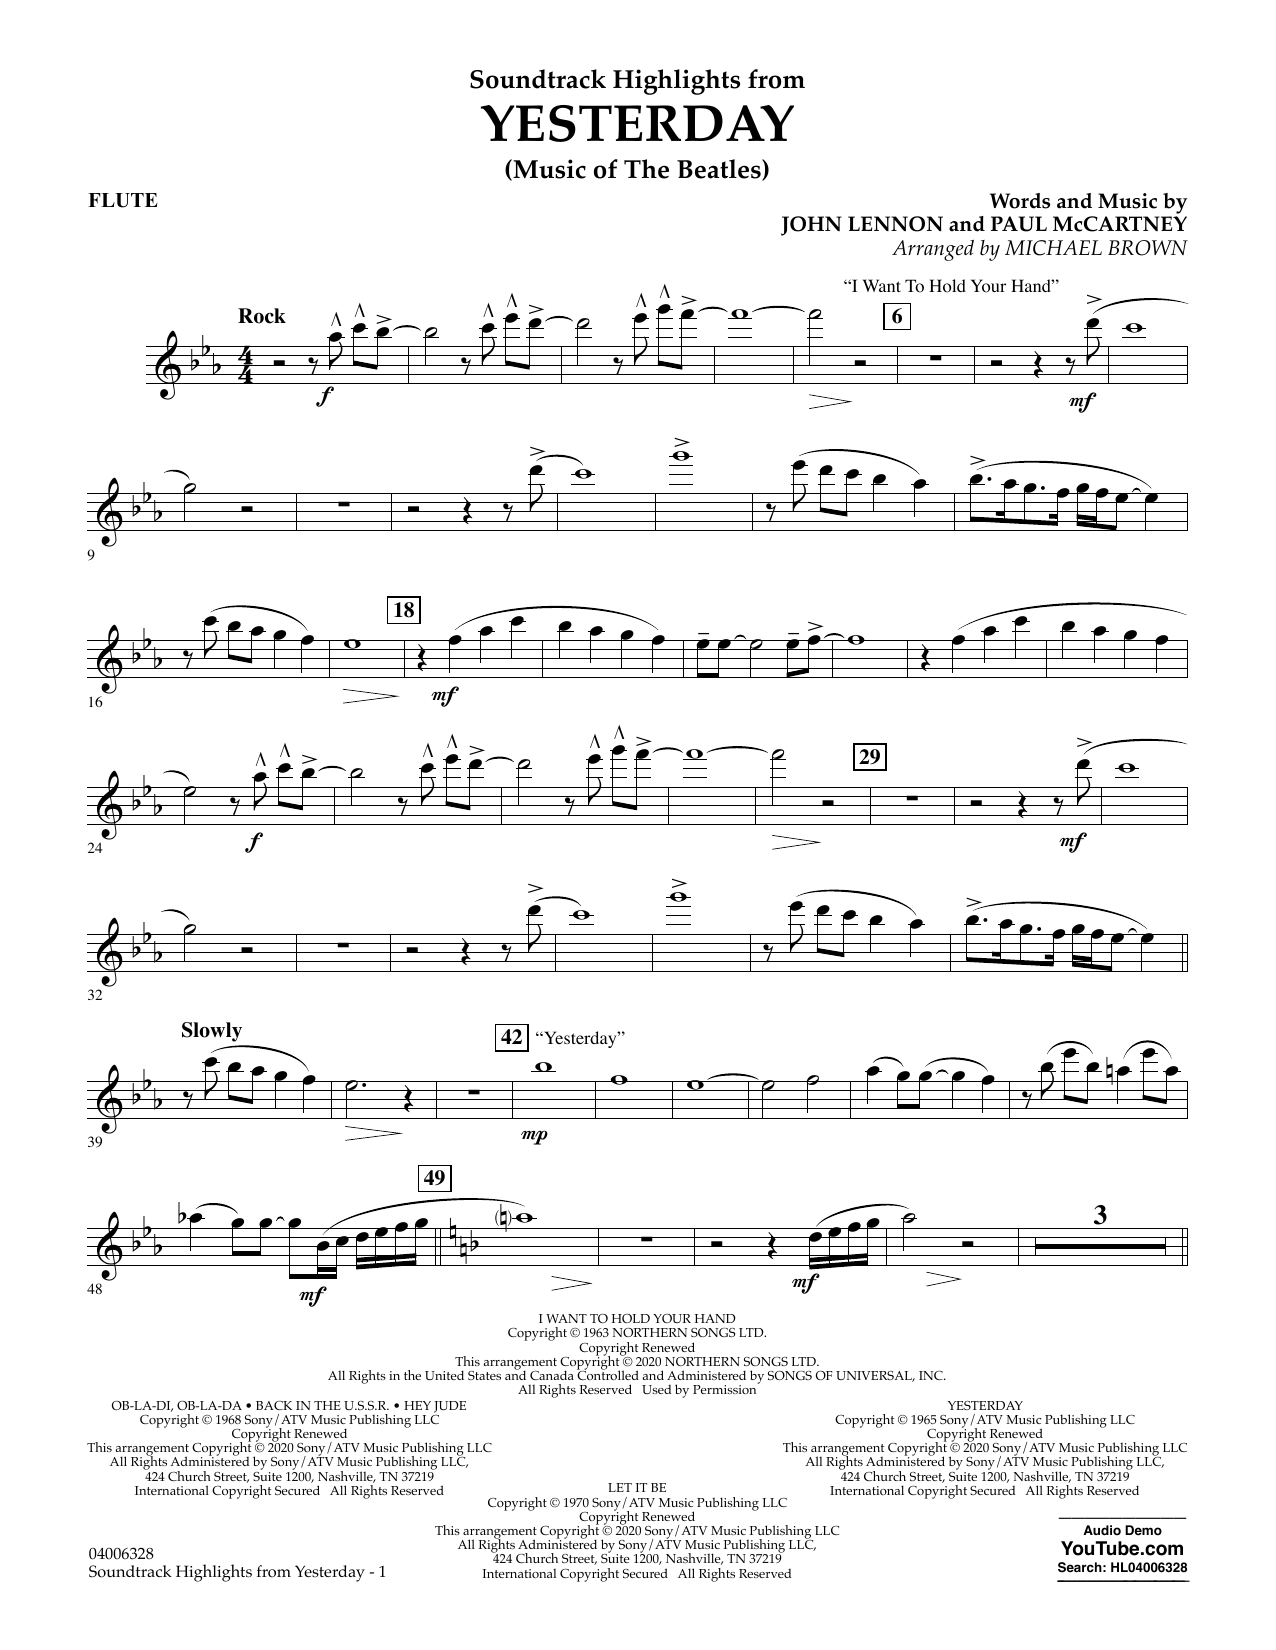 The Beatles Highlights from Yesterday (Music Of The Beatles) (arr. Michael Brown) - Flute sheet music notes and chords. Download Printable PDF.